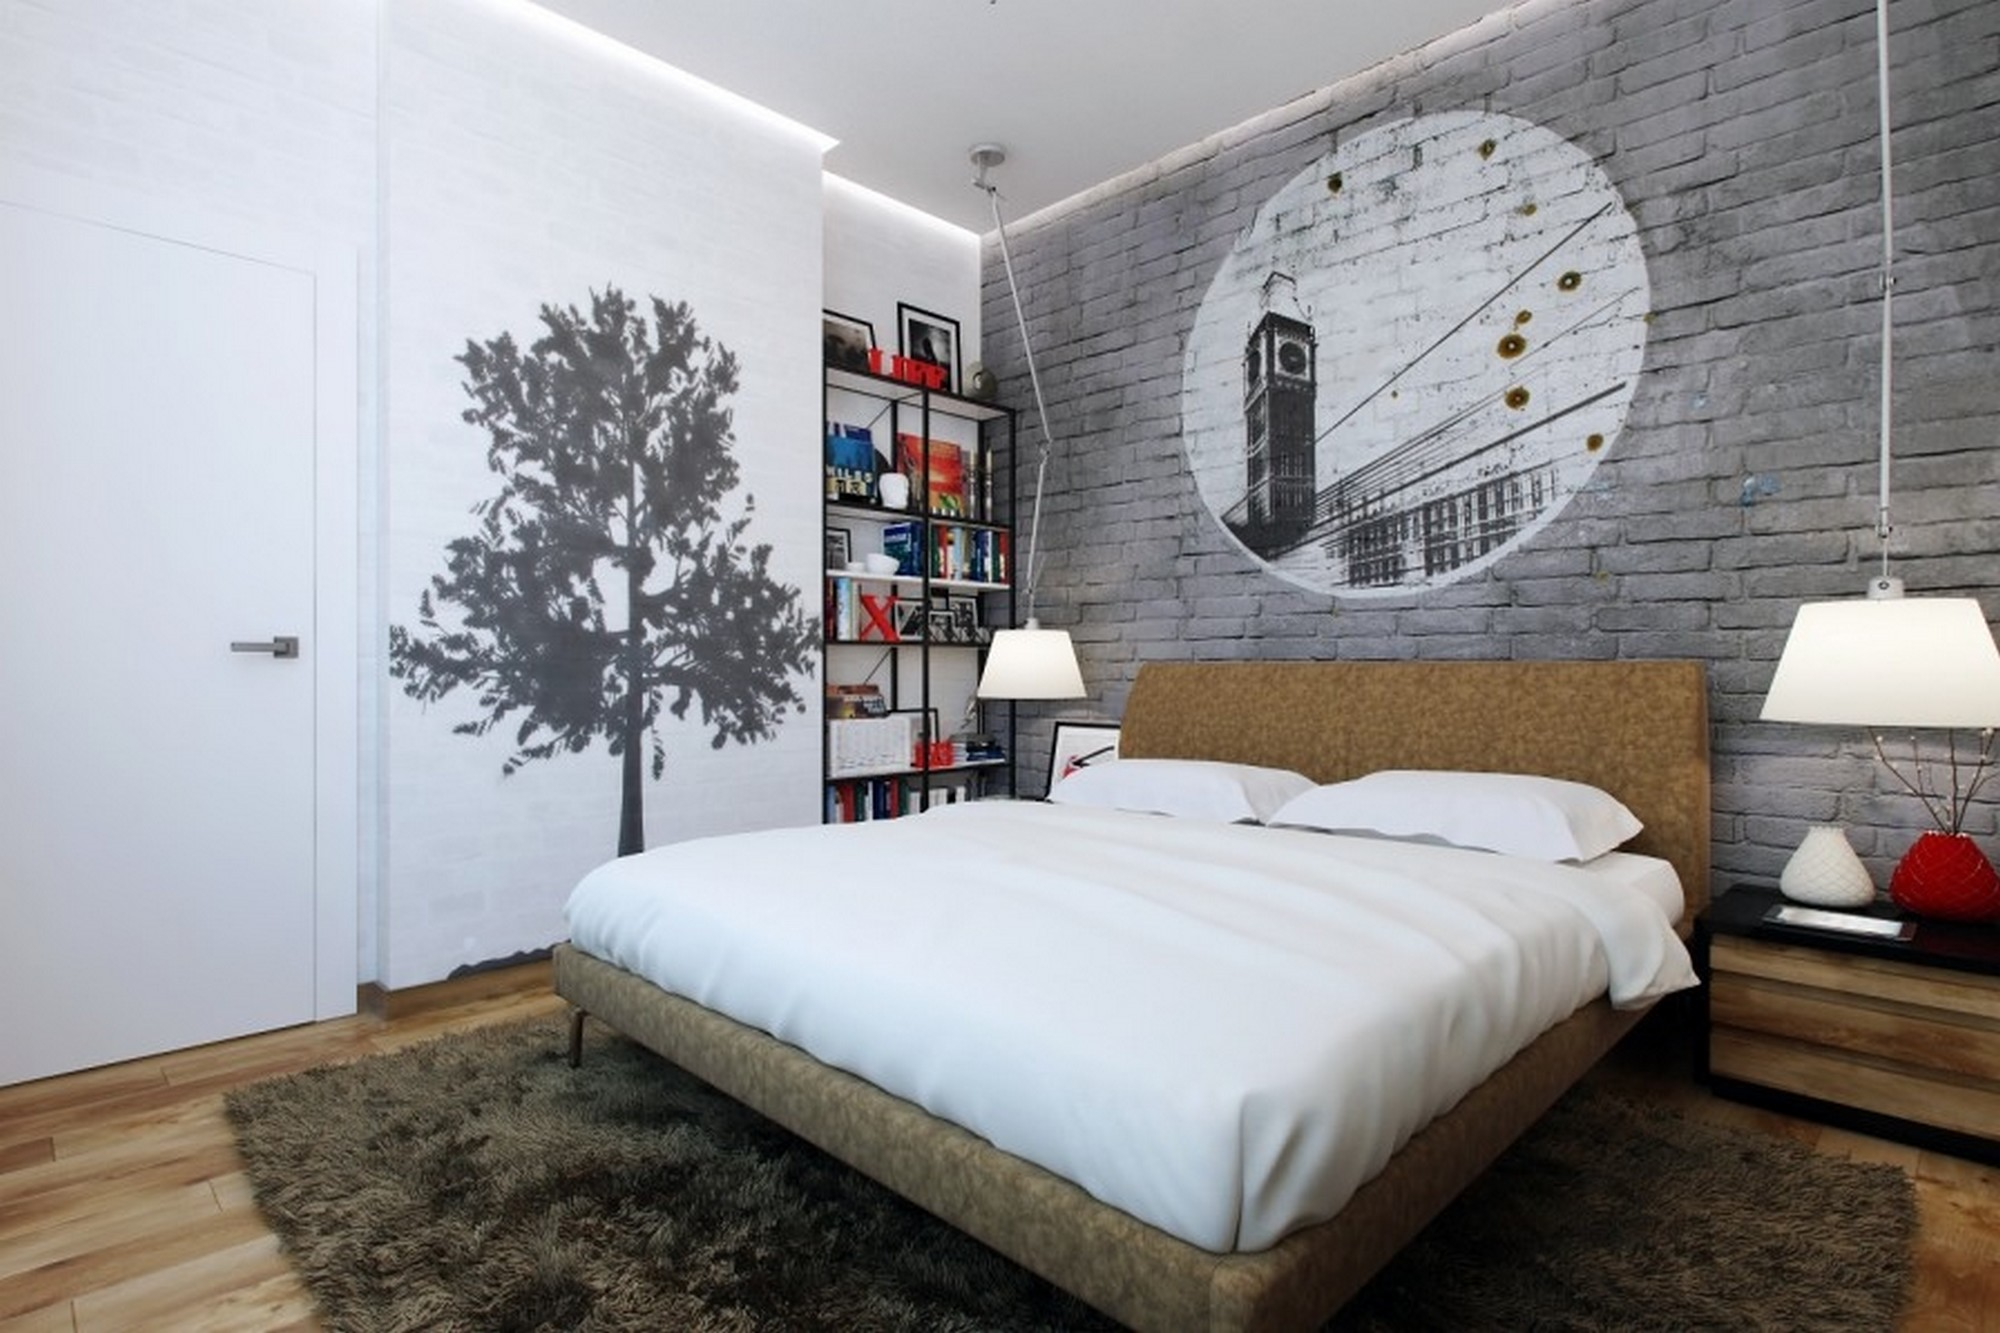 Bedroom wall decorations modern - Contemporary Bedroom Brick Walls Decorating Idea